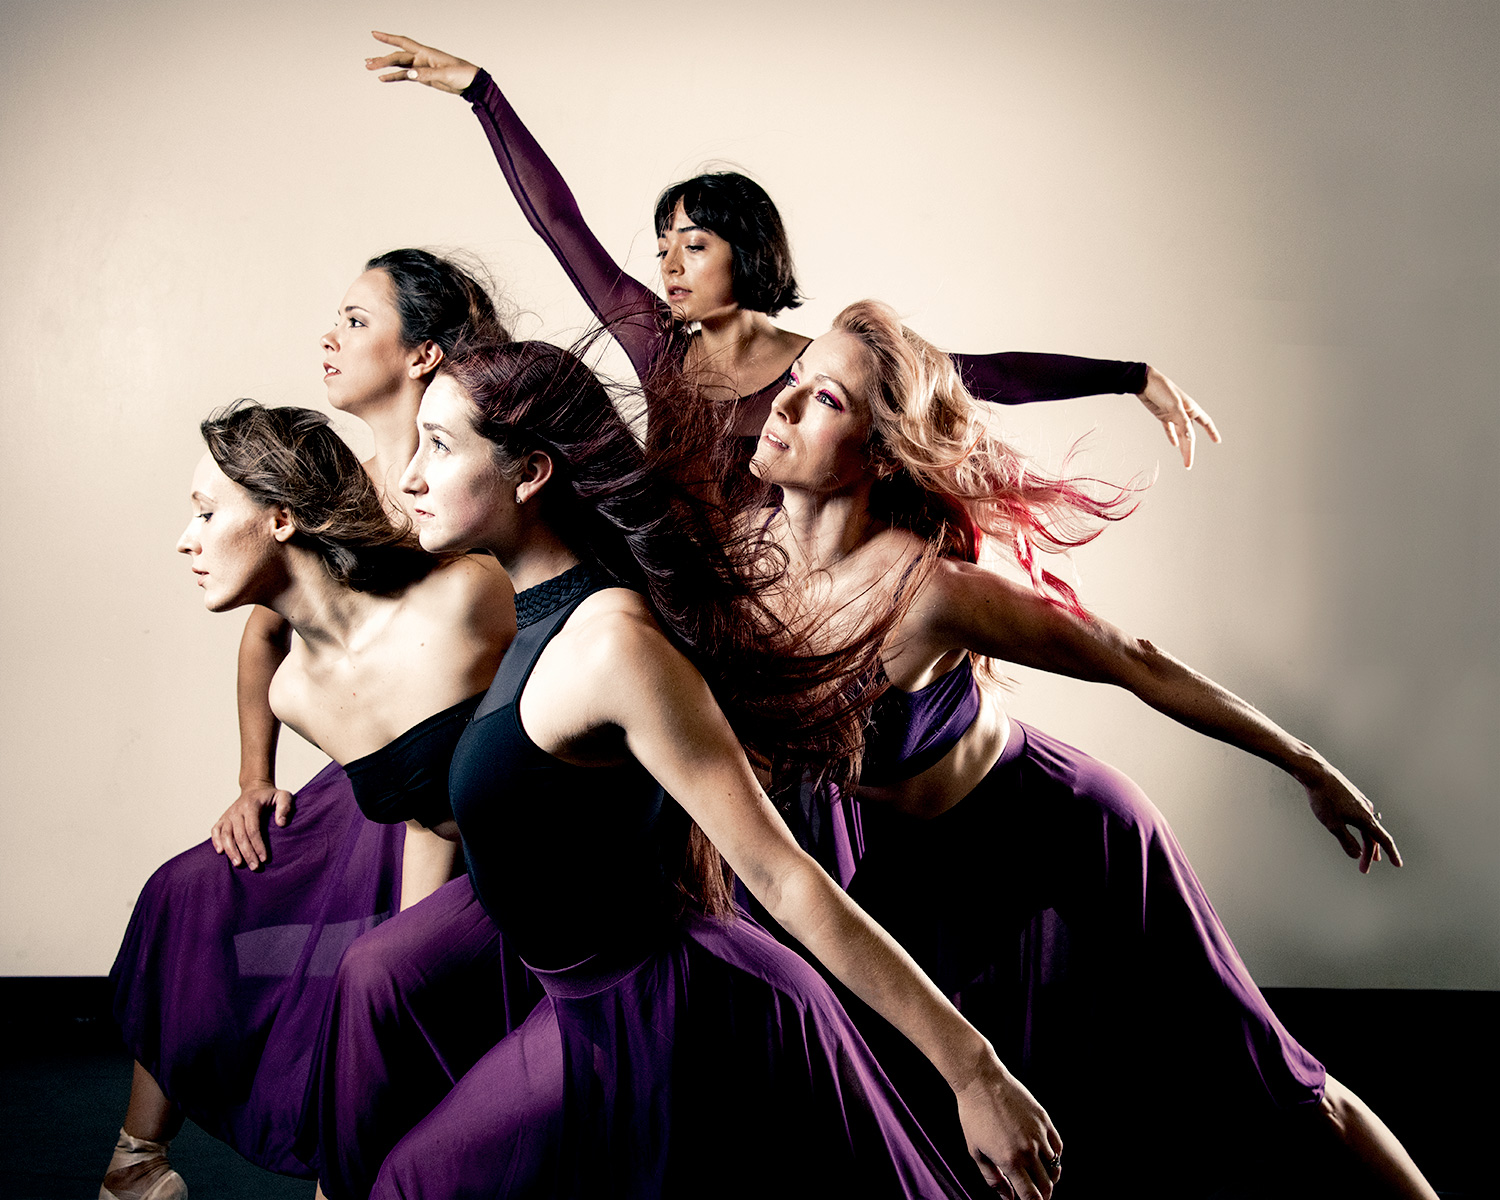 A moment from an in-studio session.  Photography by   Stephen Pruitt  . Pictured,  dancers of Ventana Ballet.